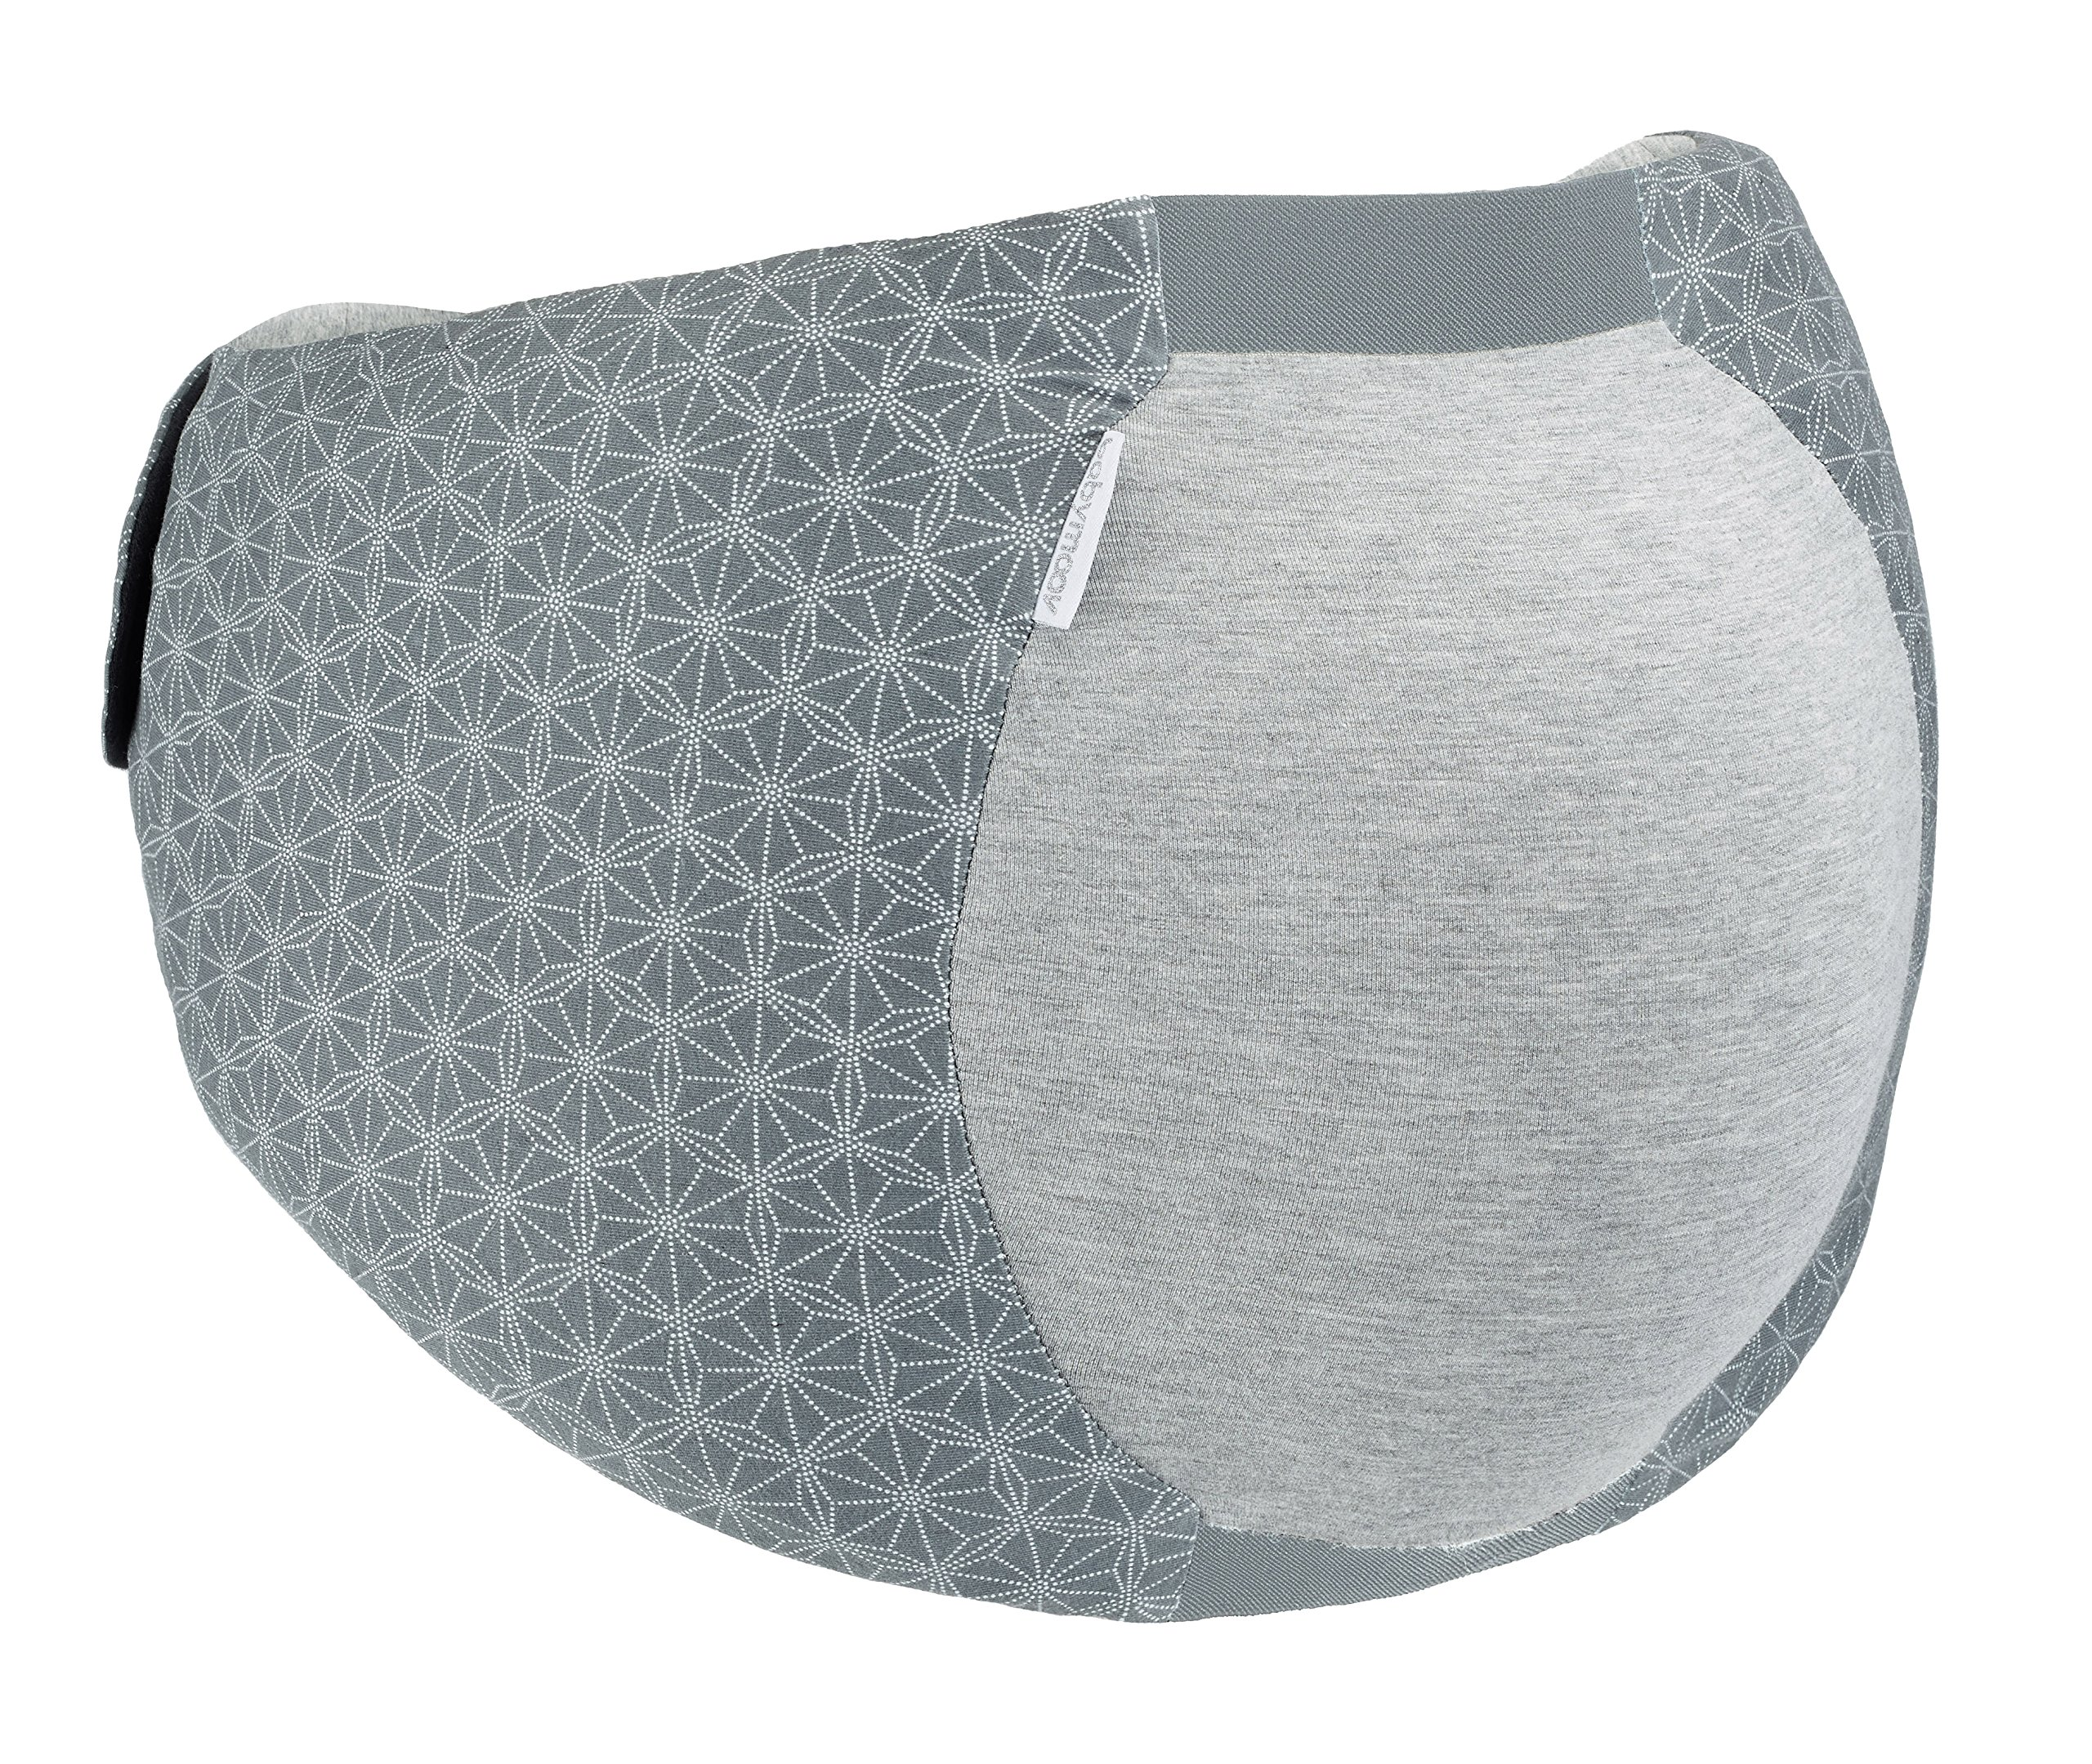 Babymoov Dream Belt Sleep Aid | Maternity Sleep Support & Wedge for Ultimate Comfort during Pregnancy (XS/S)